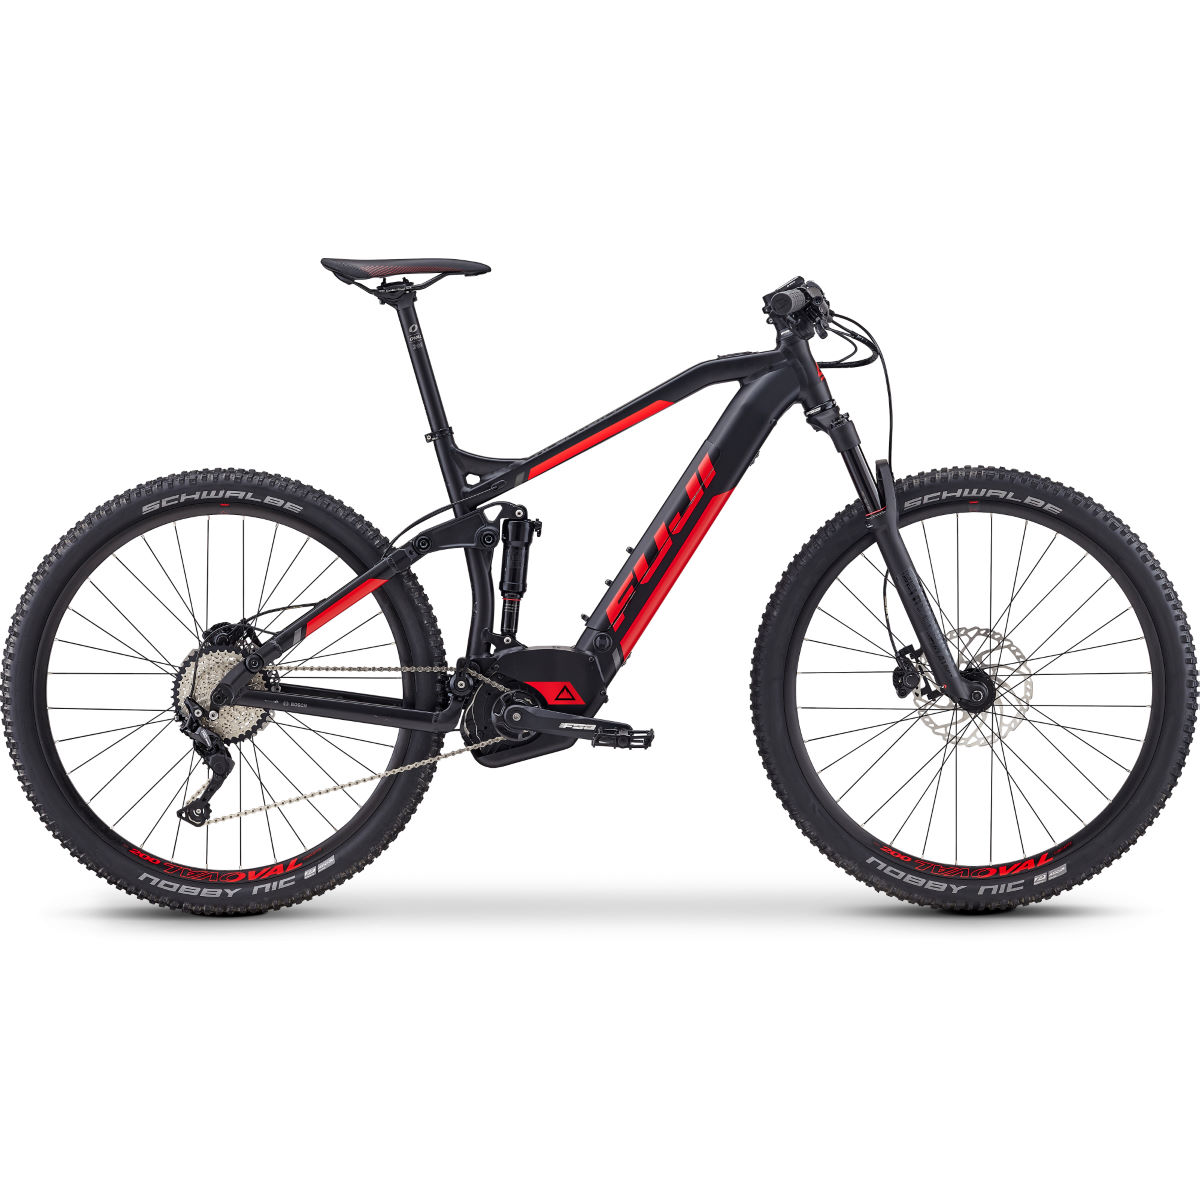 Fuji Blackhill Evo 29 1.3 Intl E-Bike (2019)   Electric Mountain Bikes